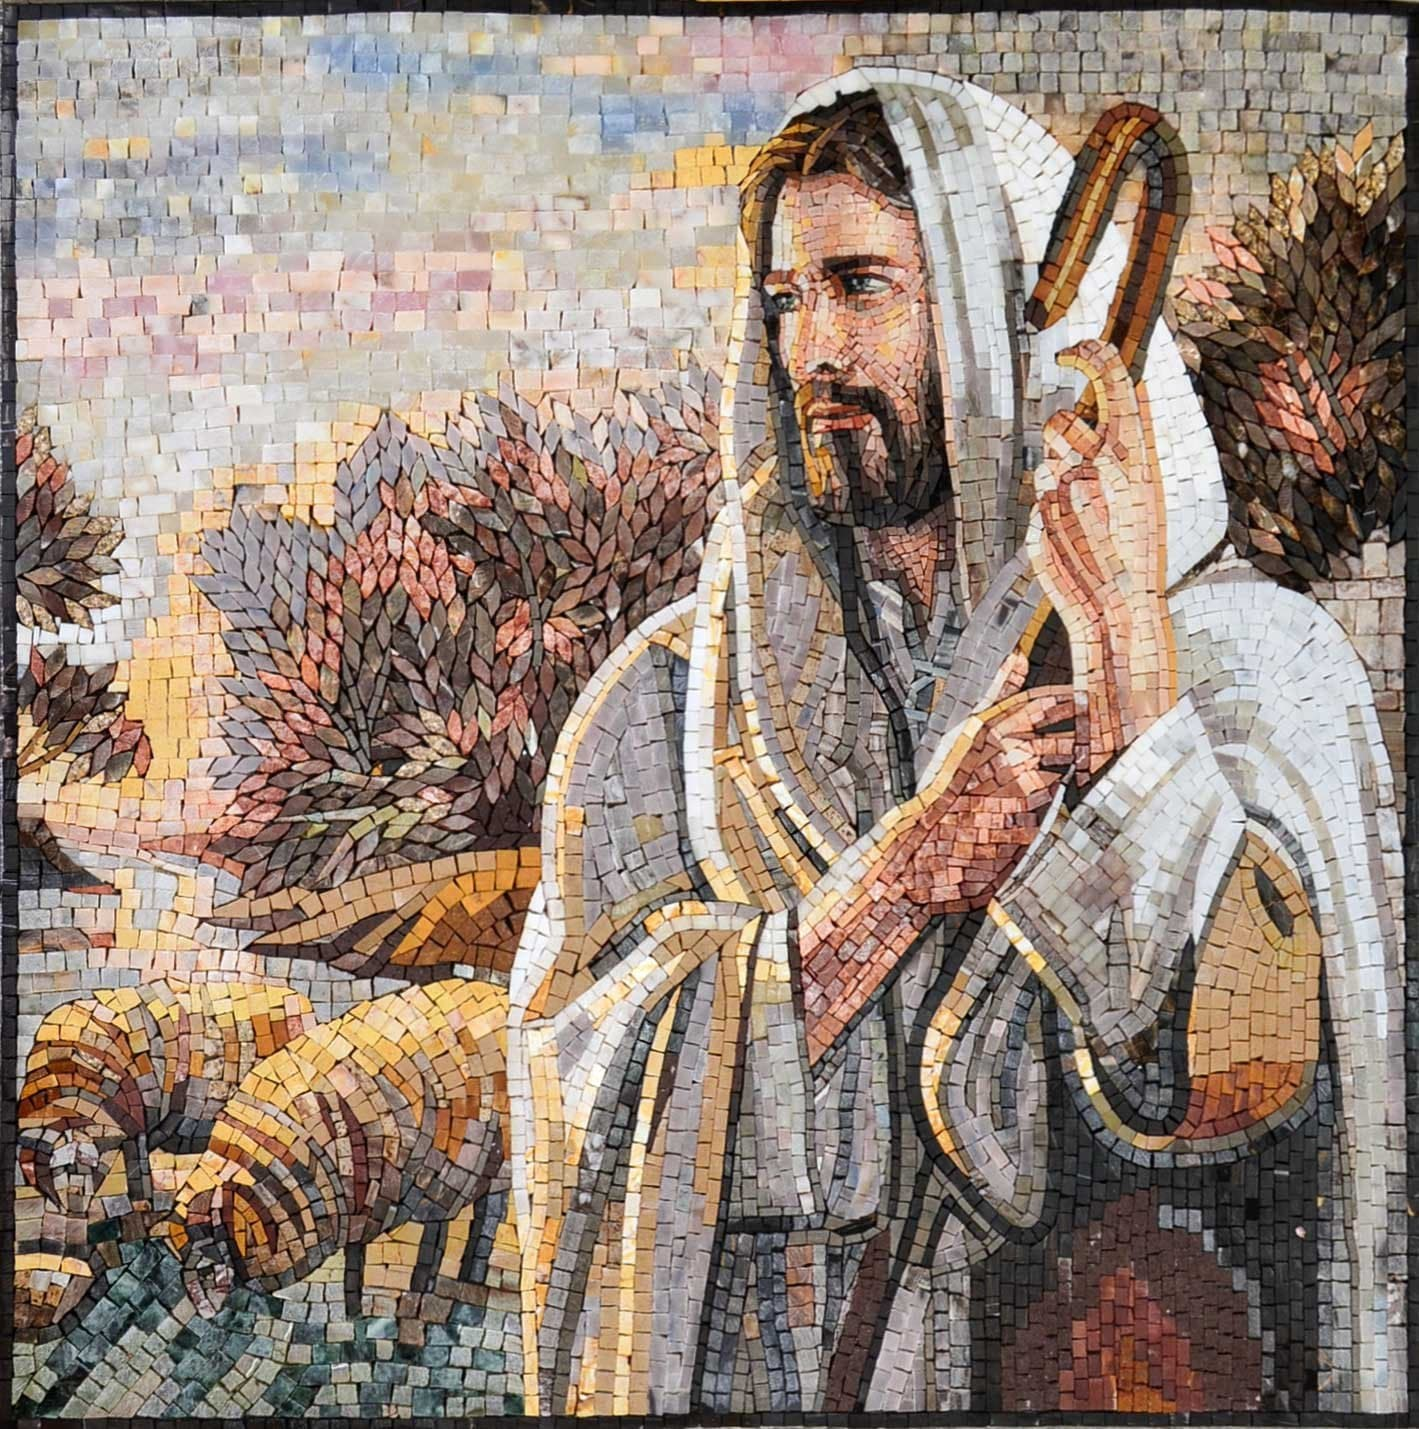 Stone Art Mosaic Jesus The Shepherd Pic